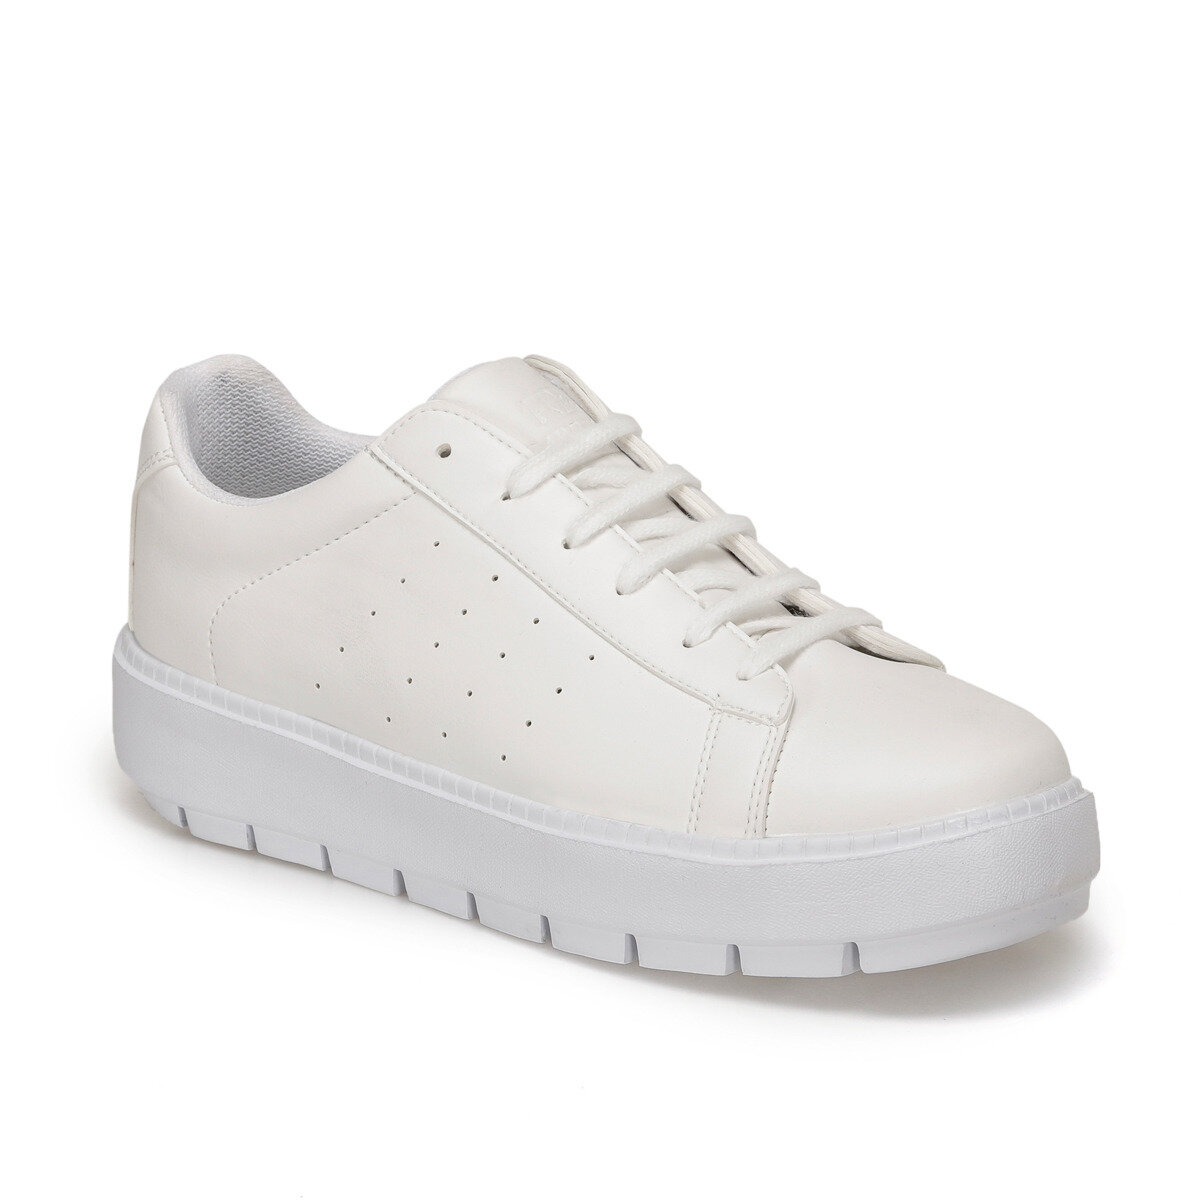 FLO KENDALL White Women 'S Sneaker Shoes LUMBERJACK